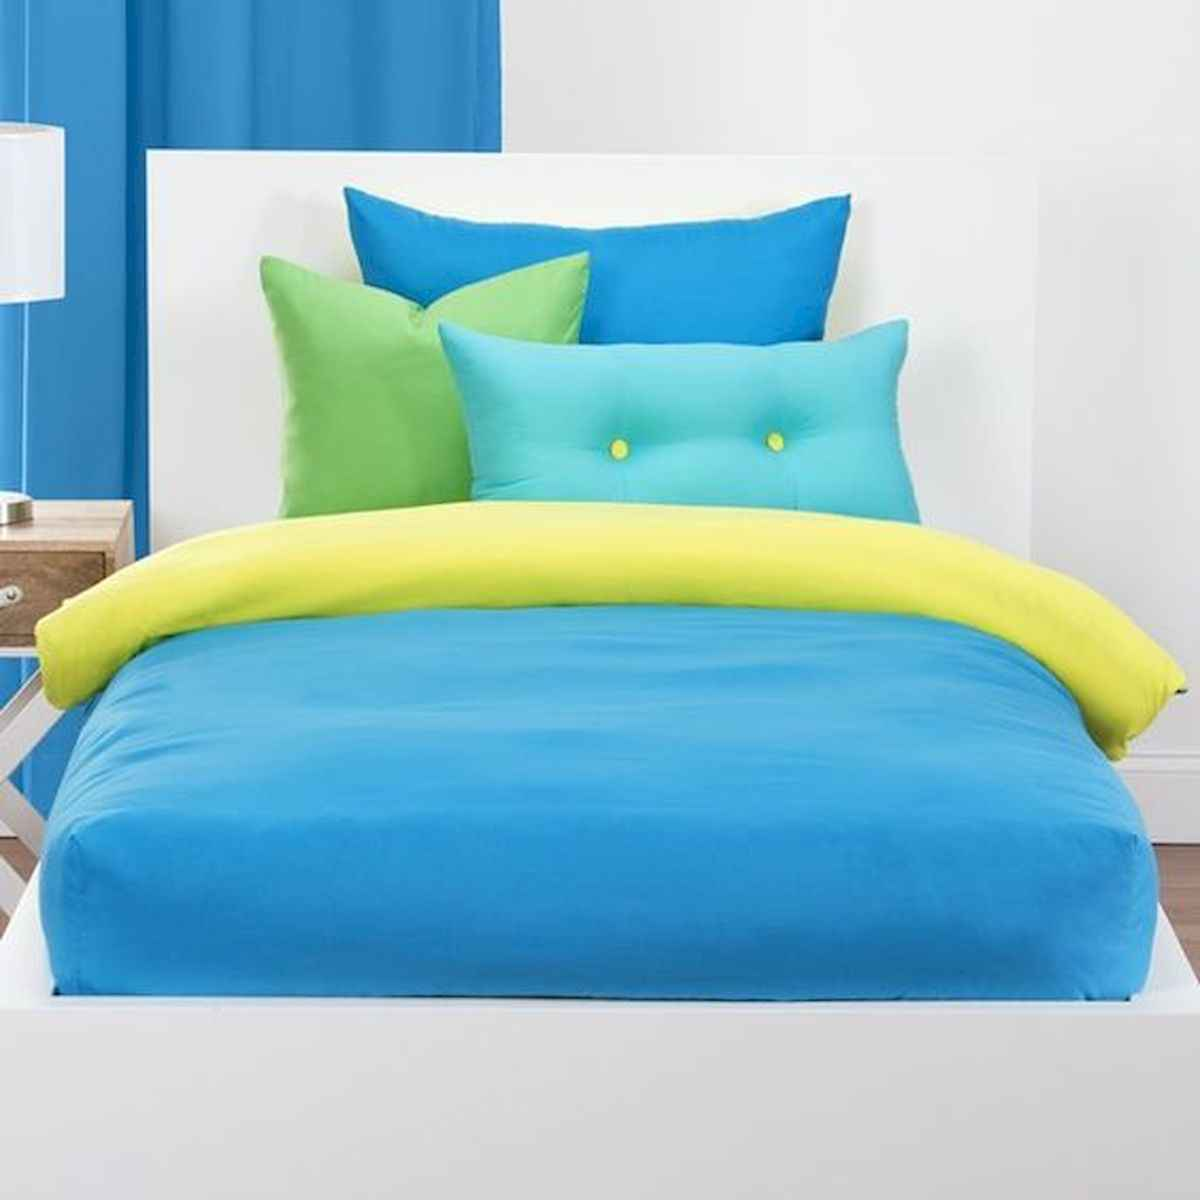 70+ Amazing Colorful Bedroom Decor Ideas And Remodel for Summer Project (6)